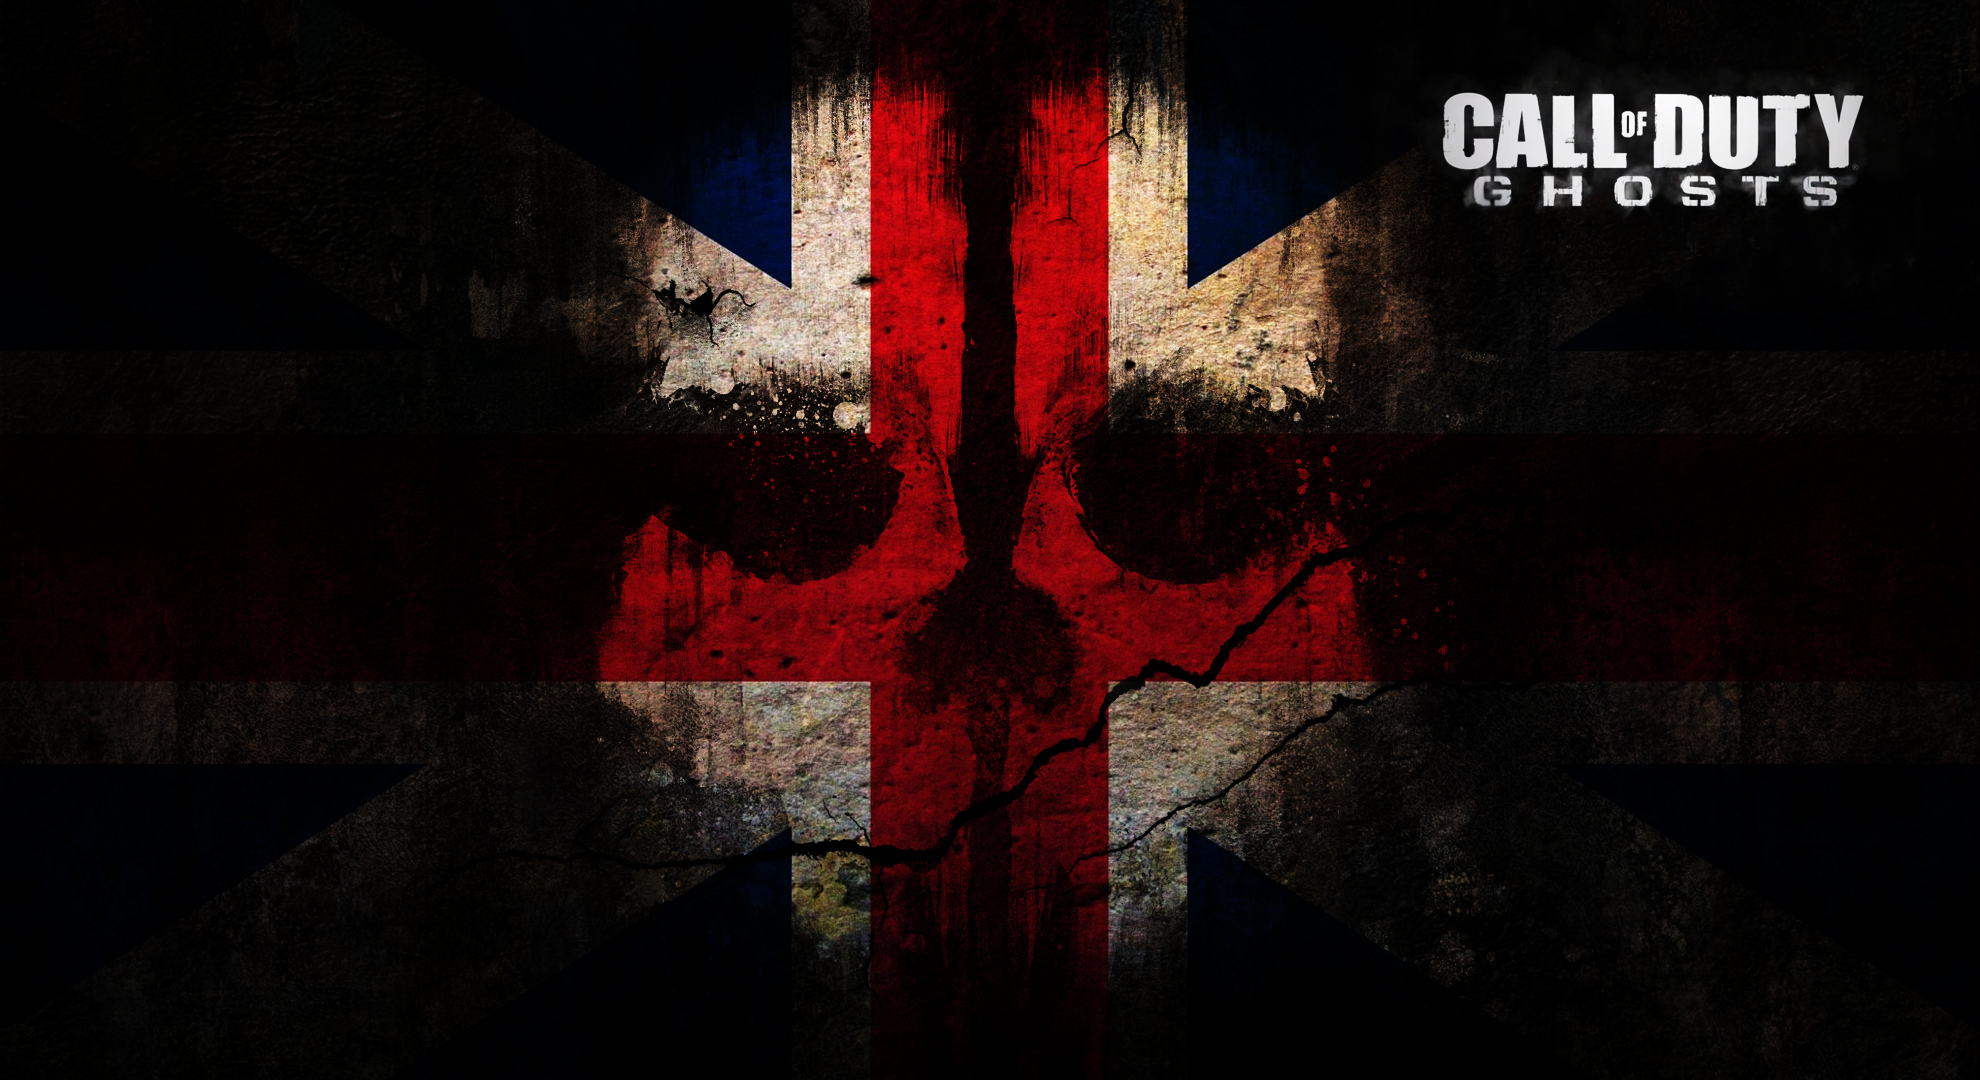 Call Of Duty Ghosts Wallpaper 1080p By Sorr535771